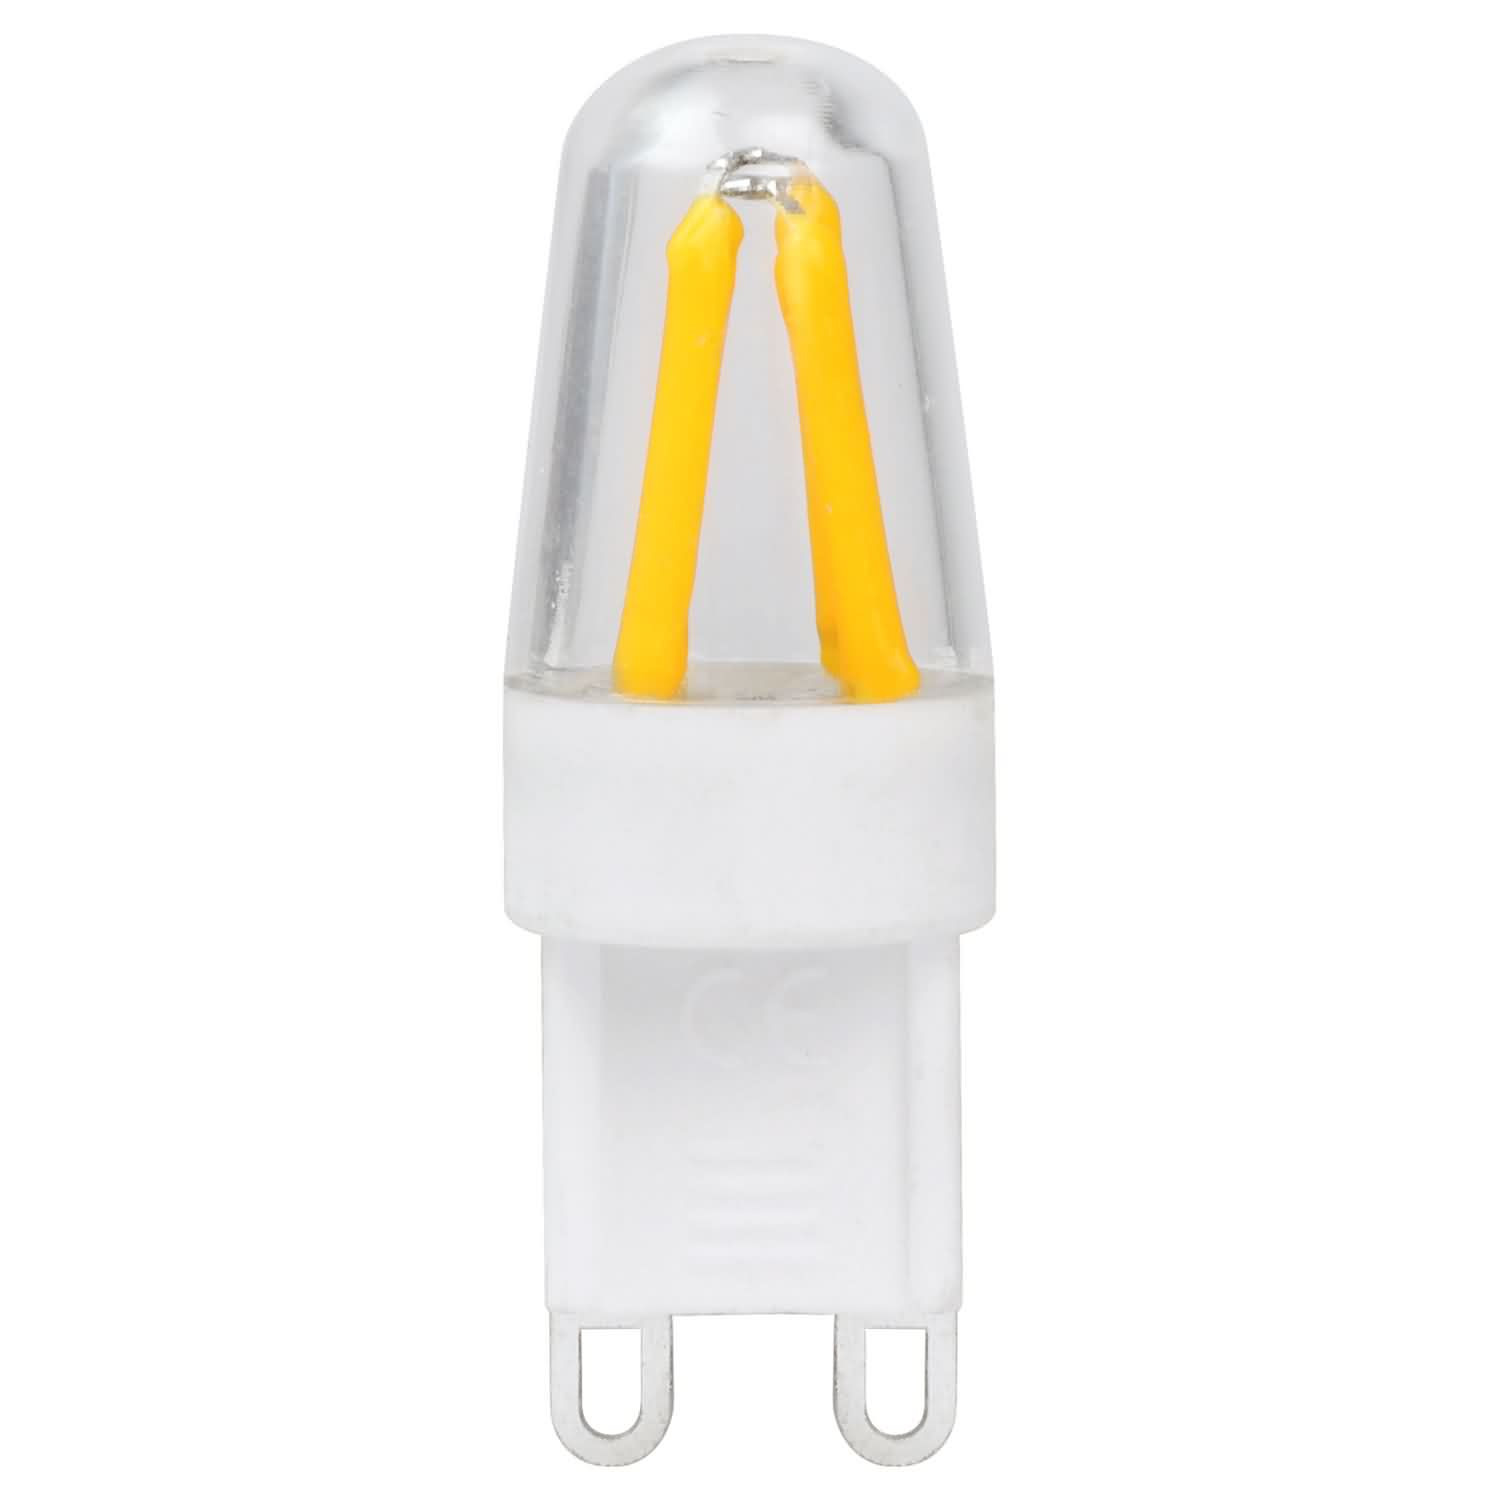 MENGS® G9 3W LED Light With PC Material COB LED Bulb Lamp In Warm White Energy-Saving Light